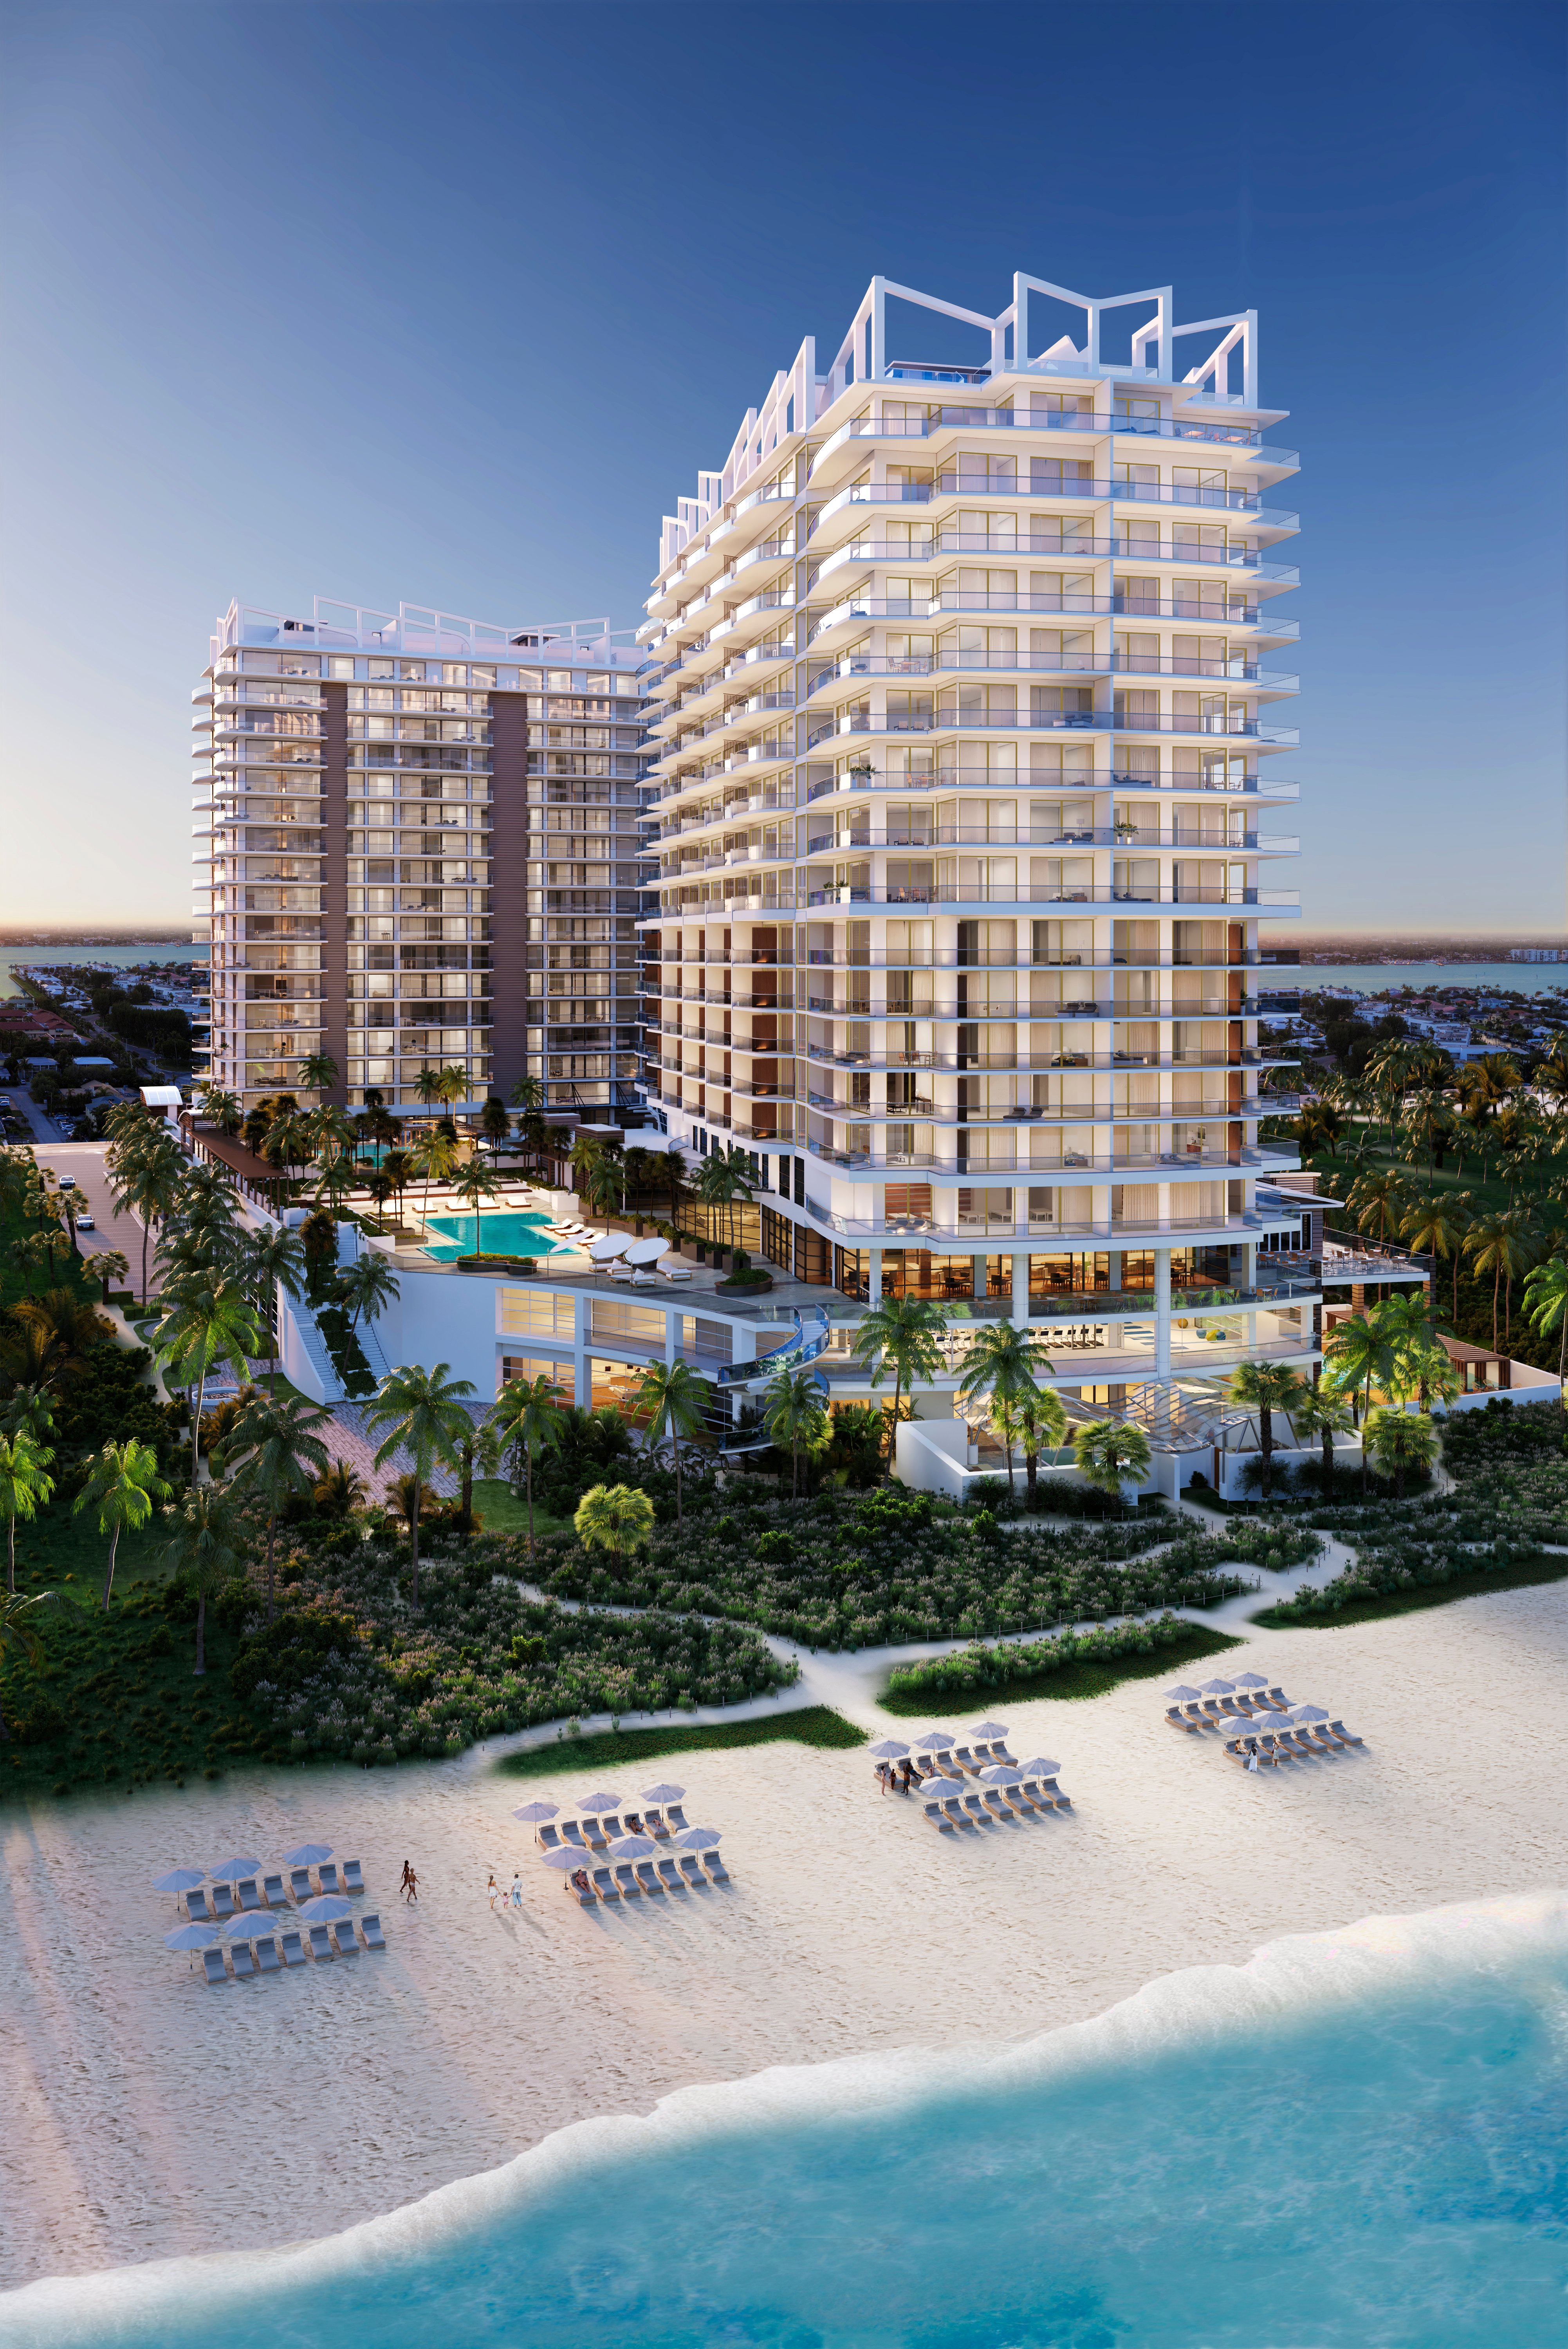 The property was built on one of the last oceanfront plots available on Singer Island.